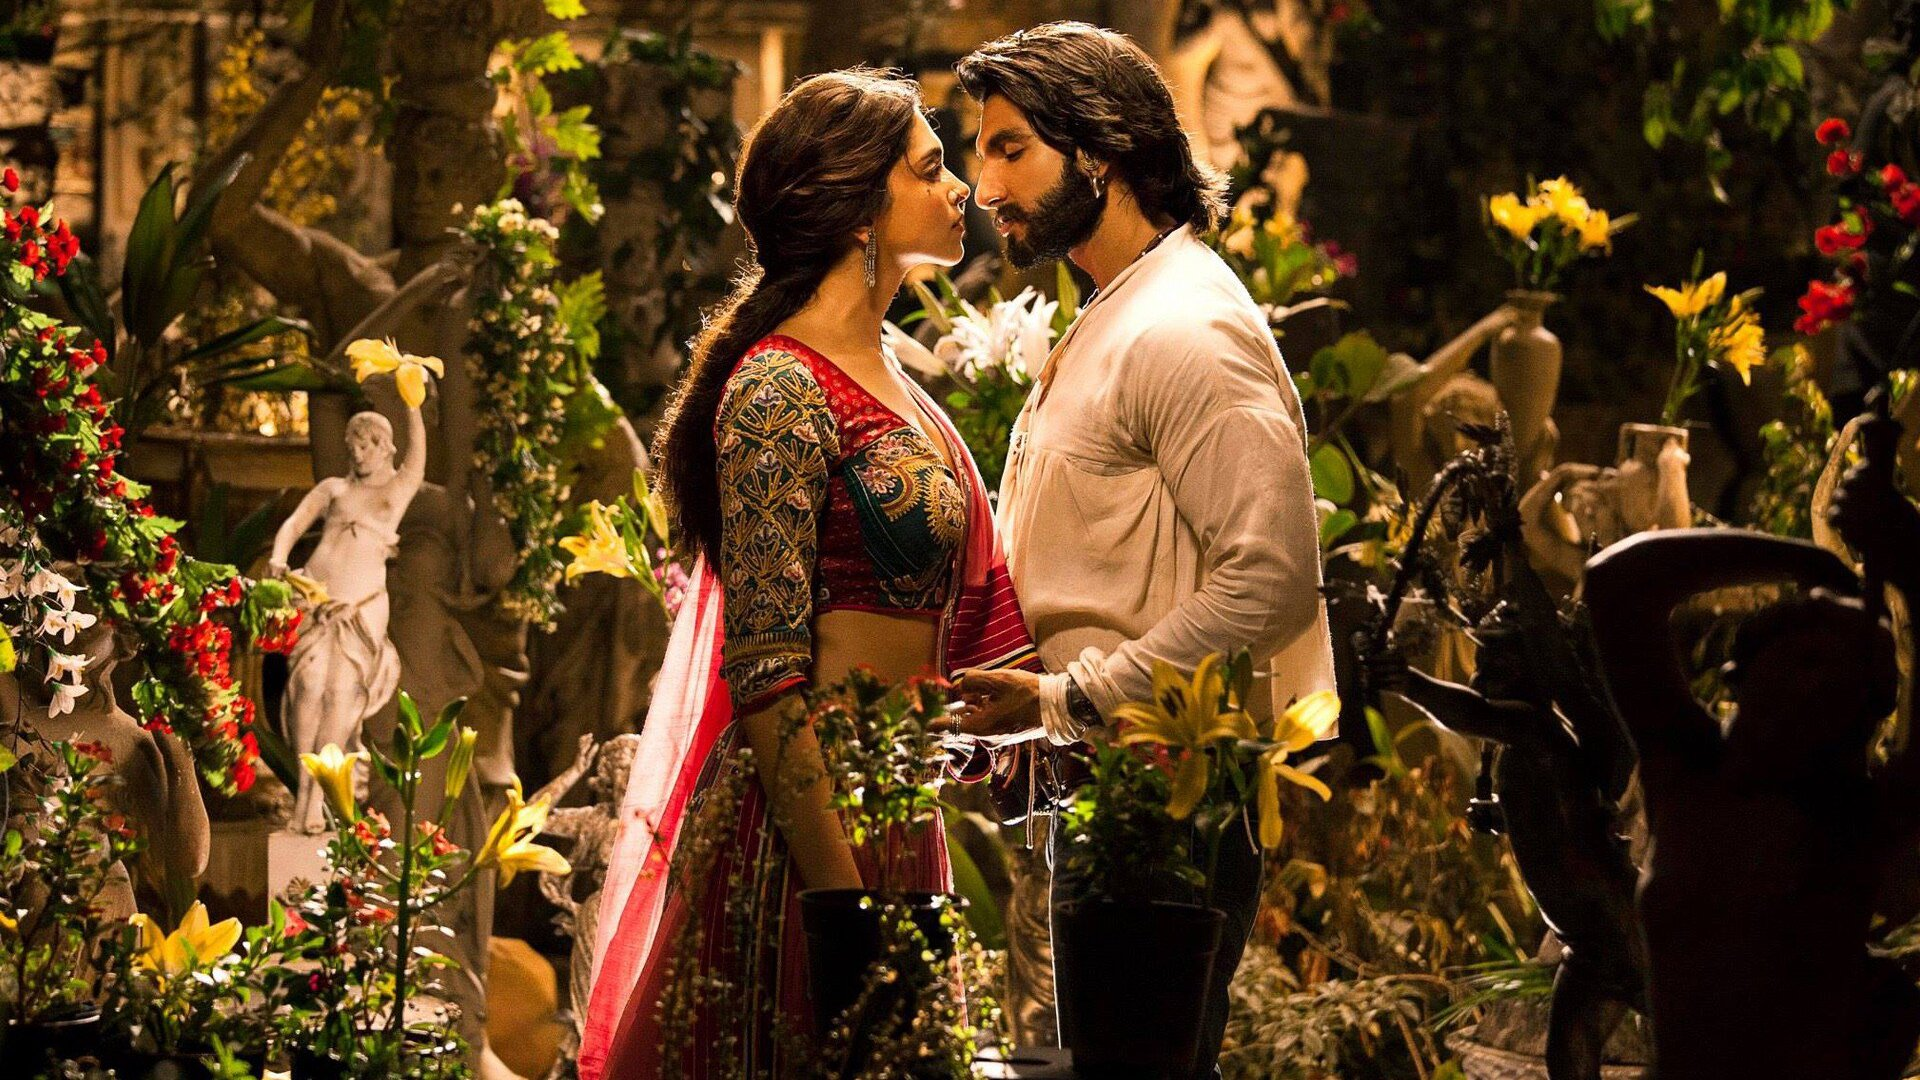 1920x1080 ram leela movie laptop full hd 1080p hd 4k wallpapers